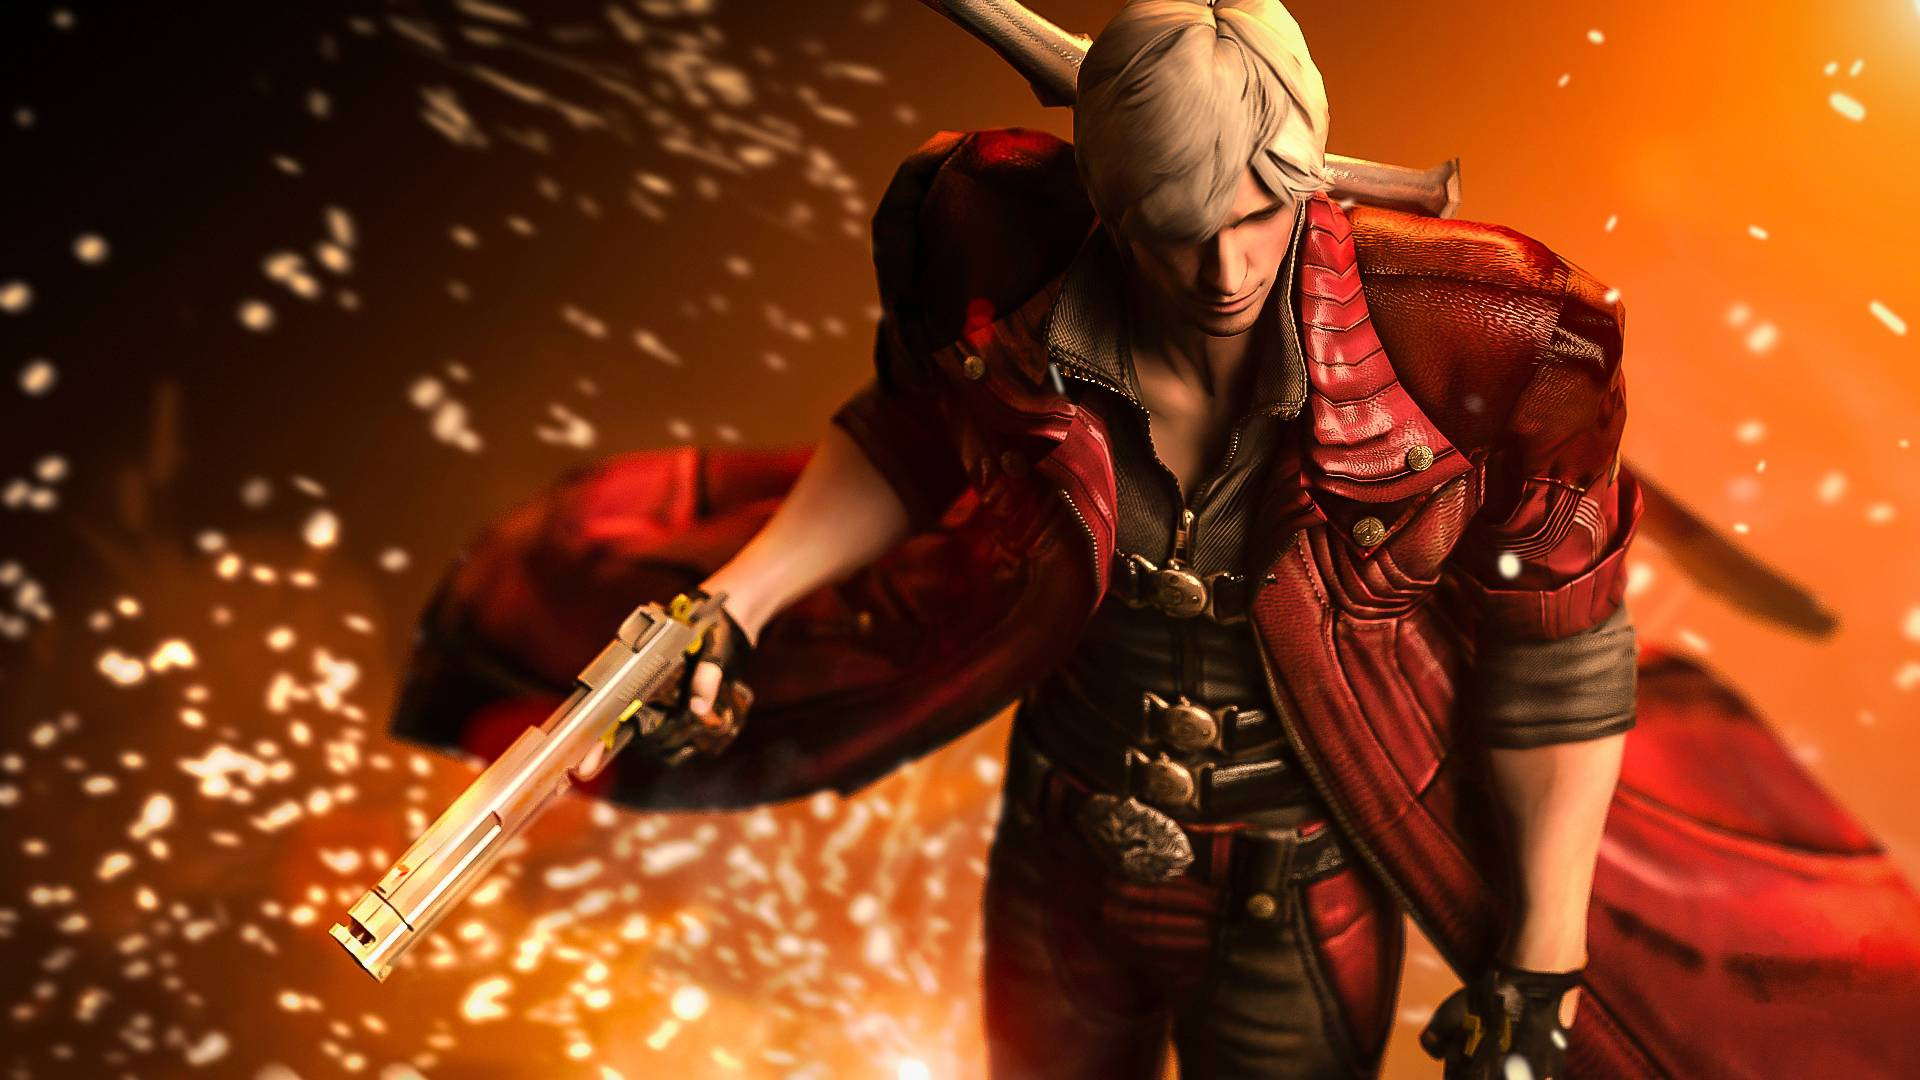 Dante Devil May Cry Wallpapers - Wallpaper Cave